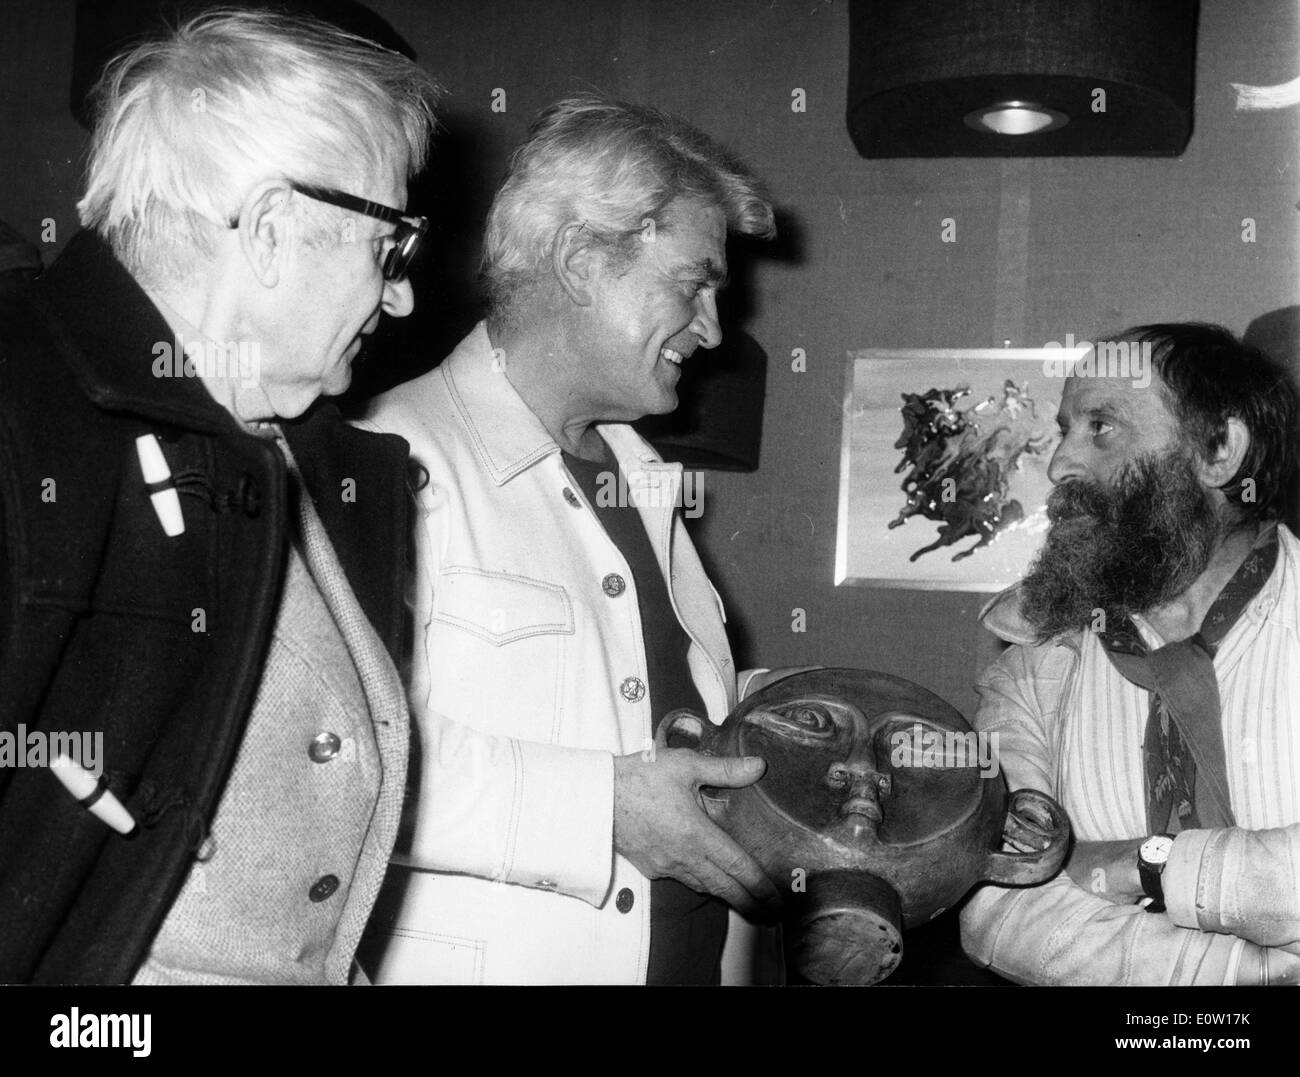 Jean Marais talking to a bearded man - Stock Image